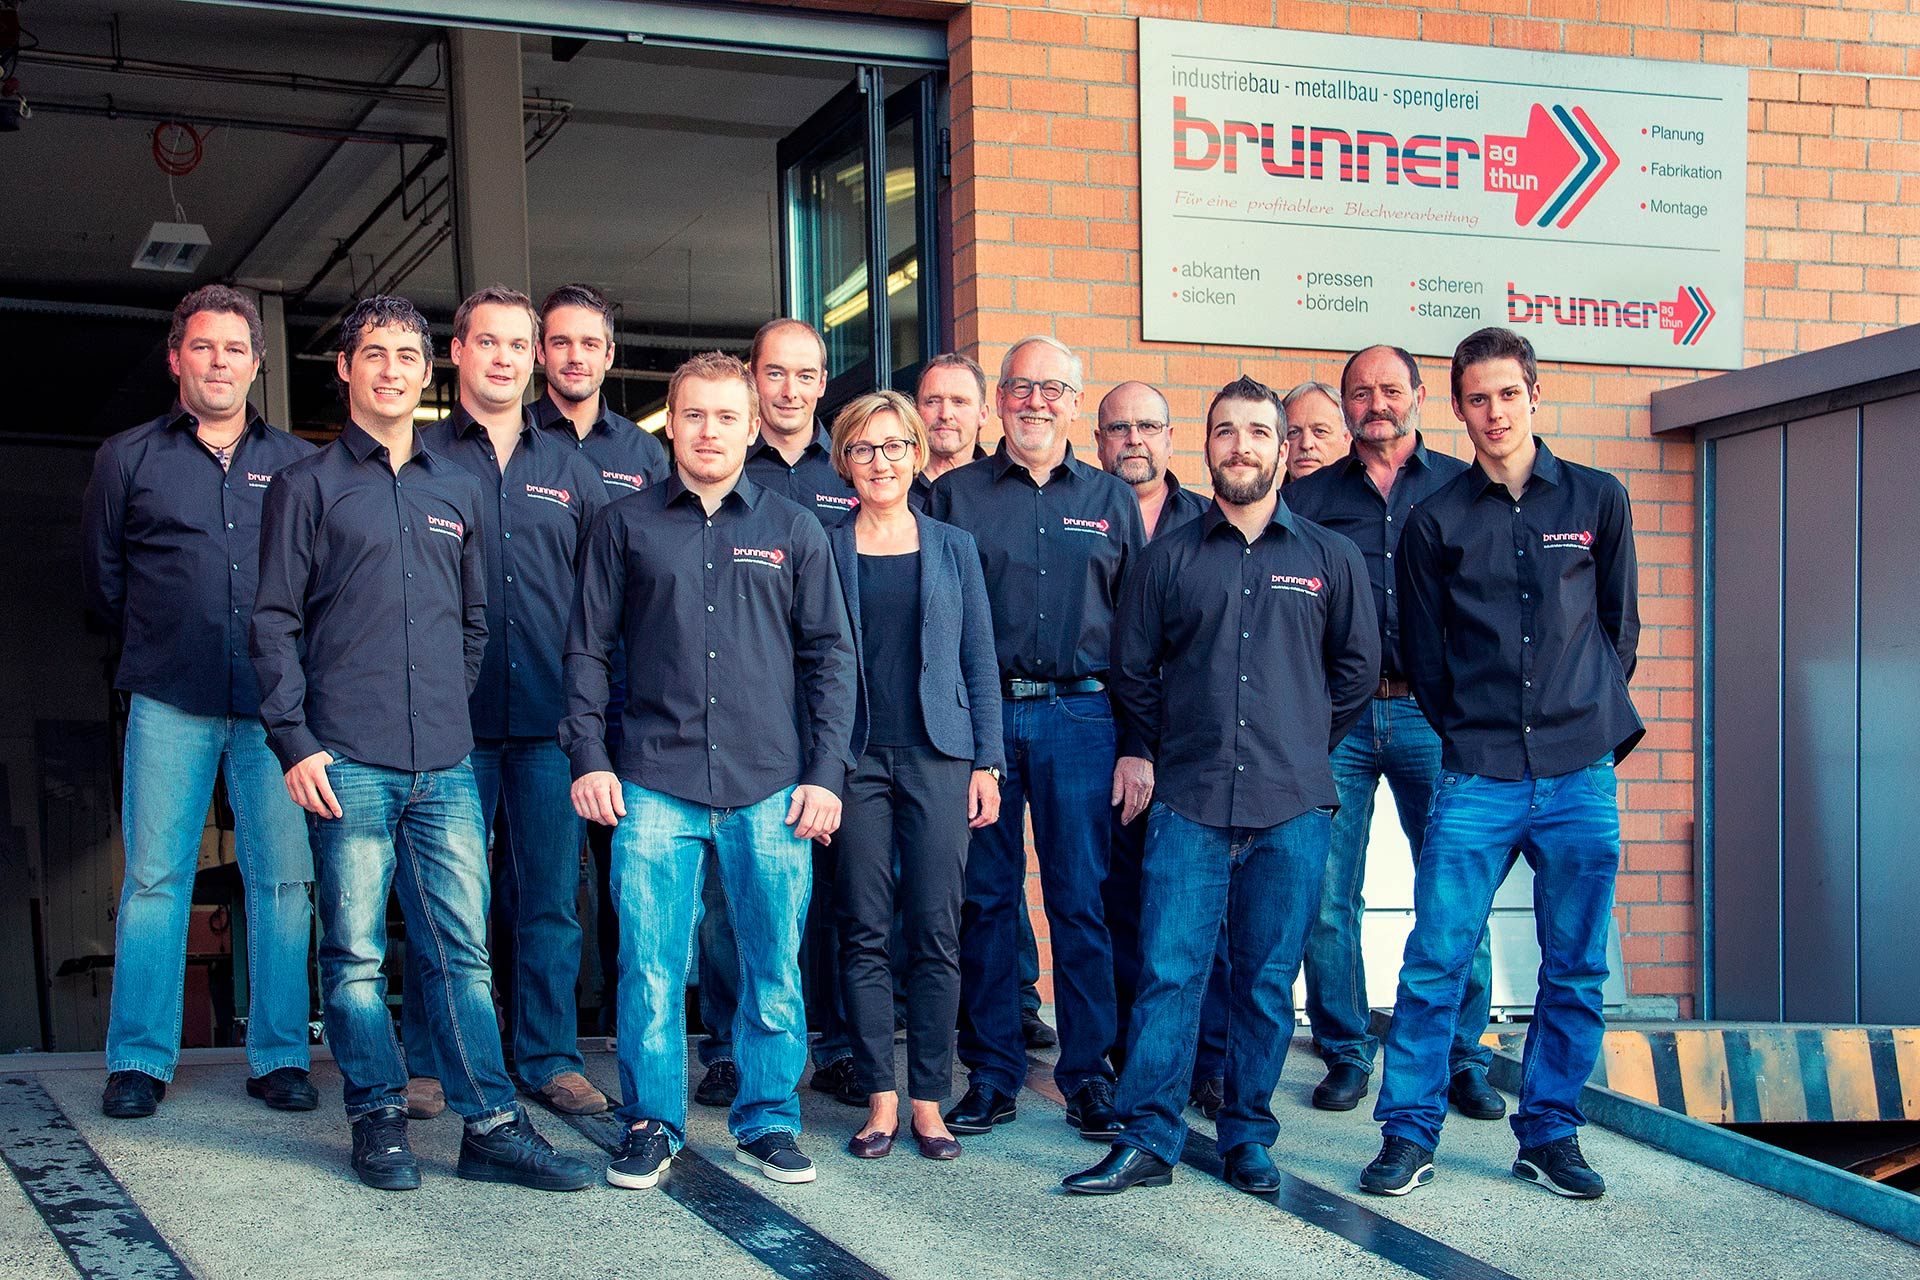 brunner-ag_team_Web1920_170609